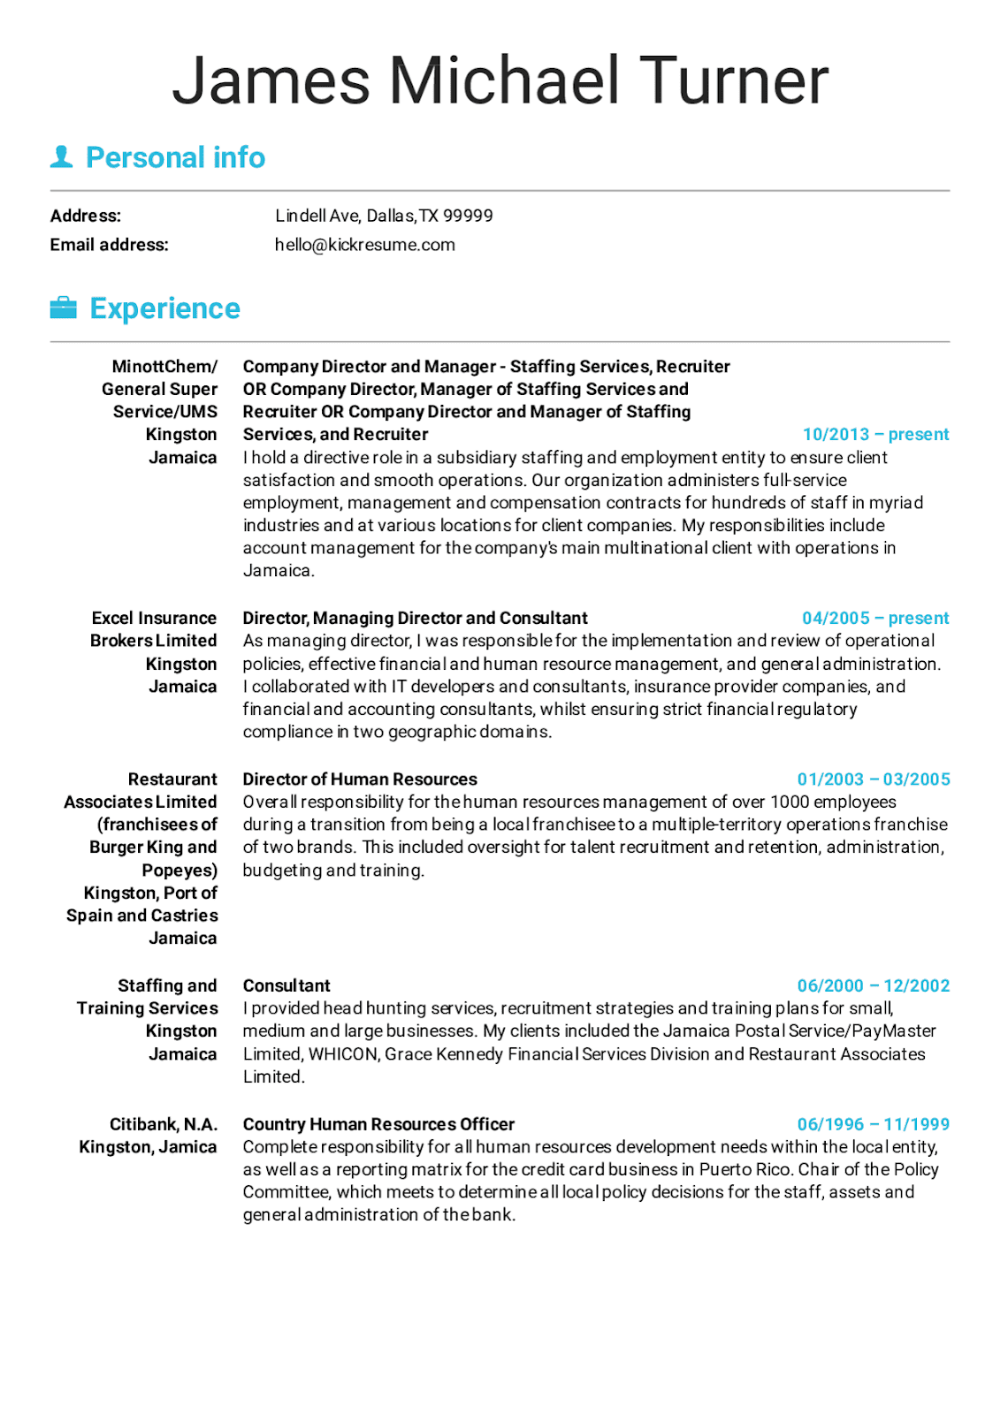 Data Analyst Resume Examples 2019 Data Analyst Resume Sample 2020 Data Analyst Resume Examples Resume Summary